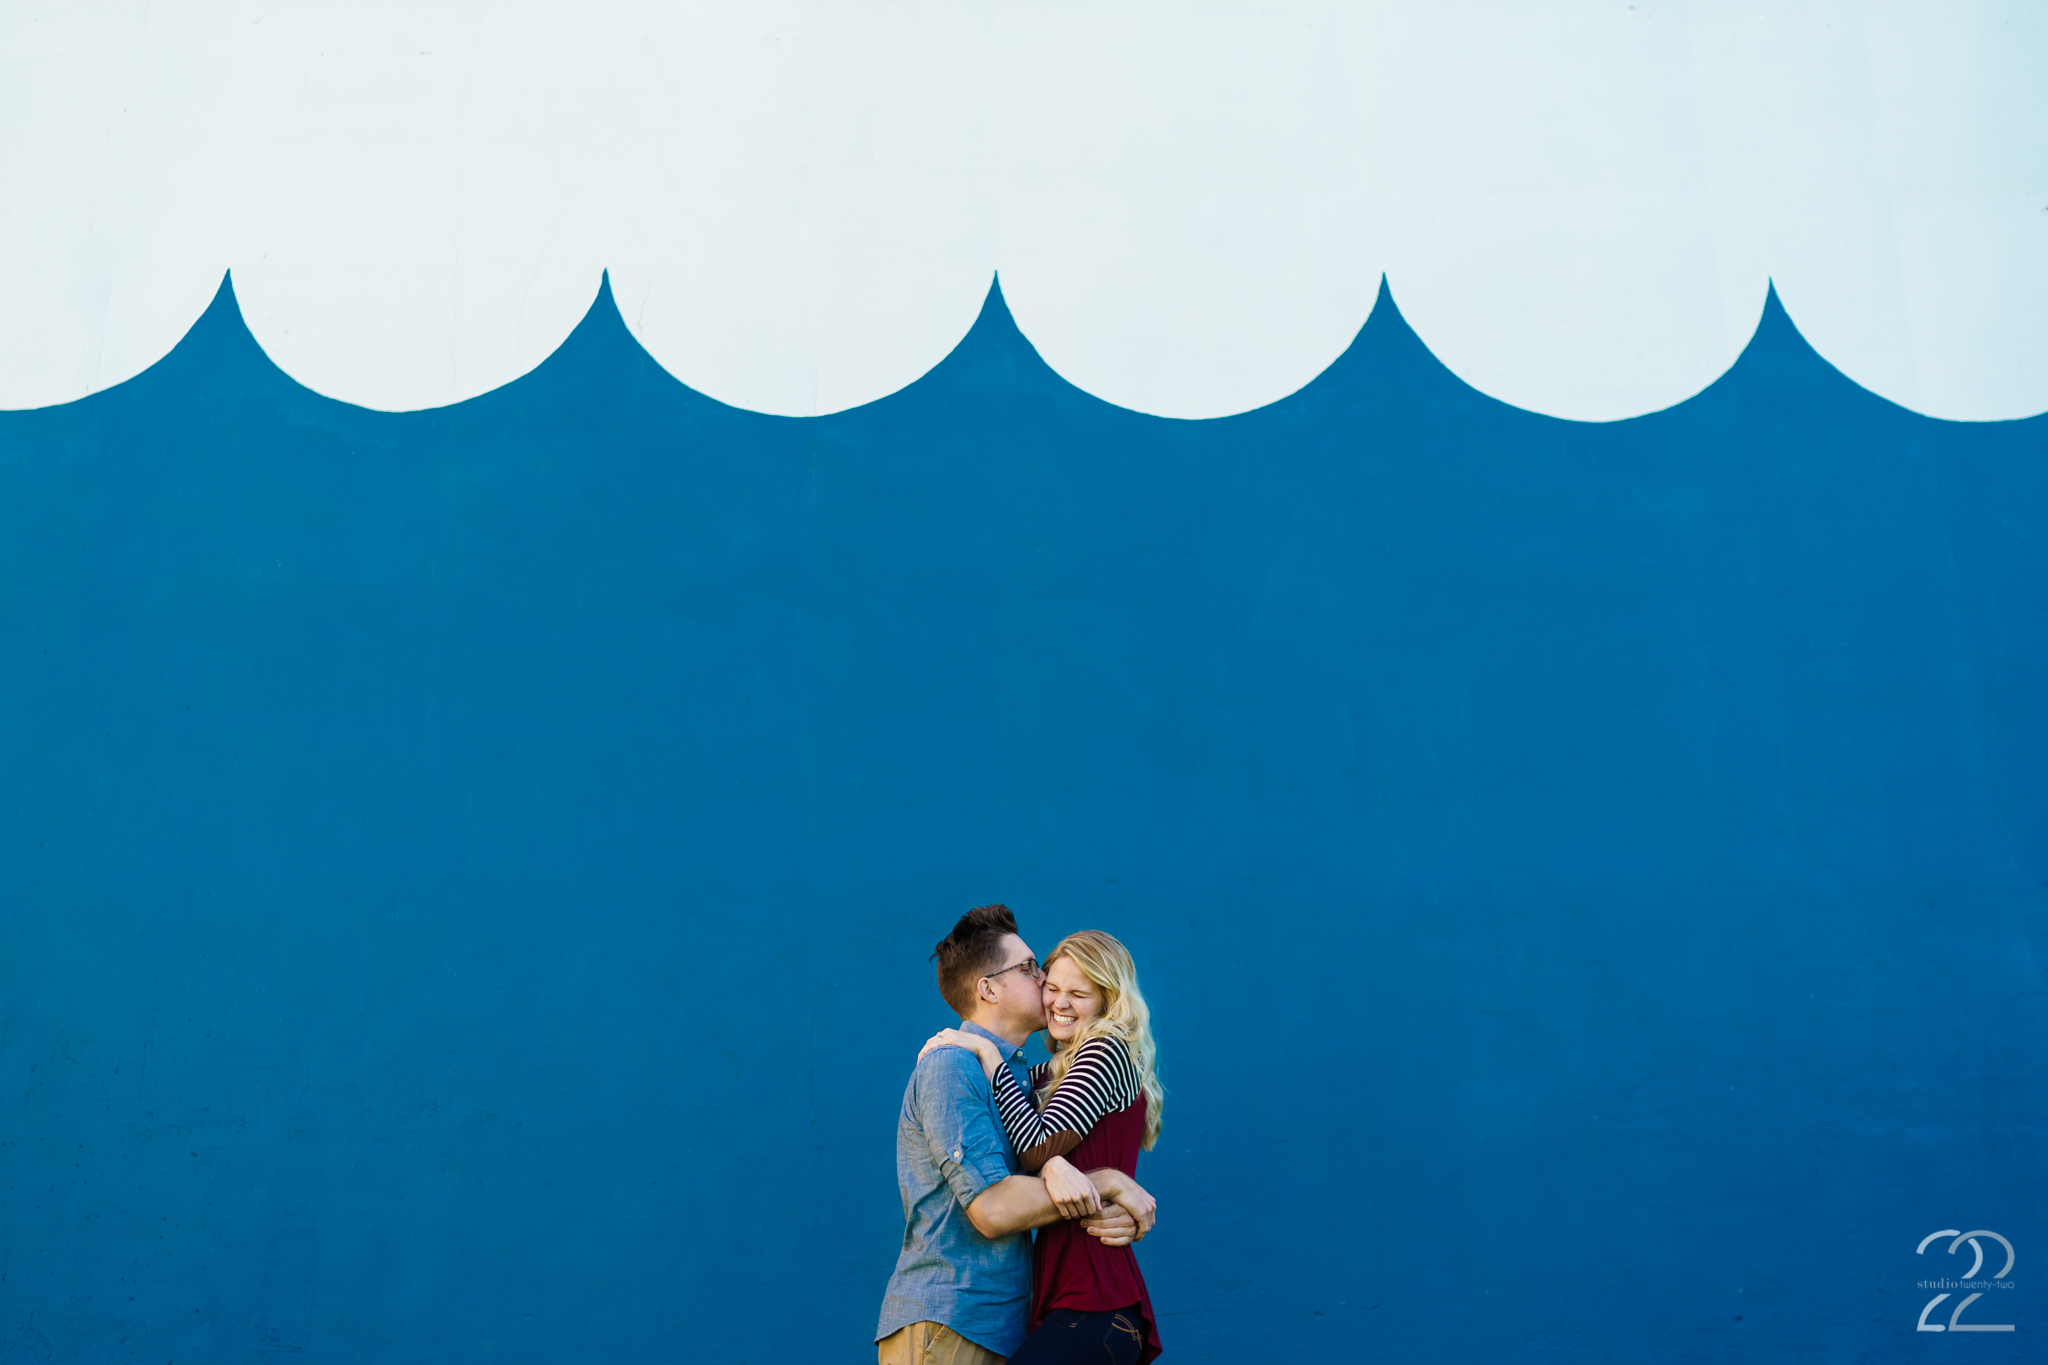 A man gives a big kiss on a woman's cheek near Riverscape Metropark by Dayton Wedding Photographer Studio 22 Photography